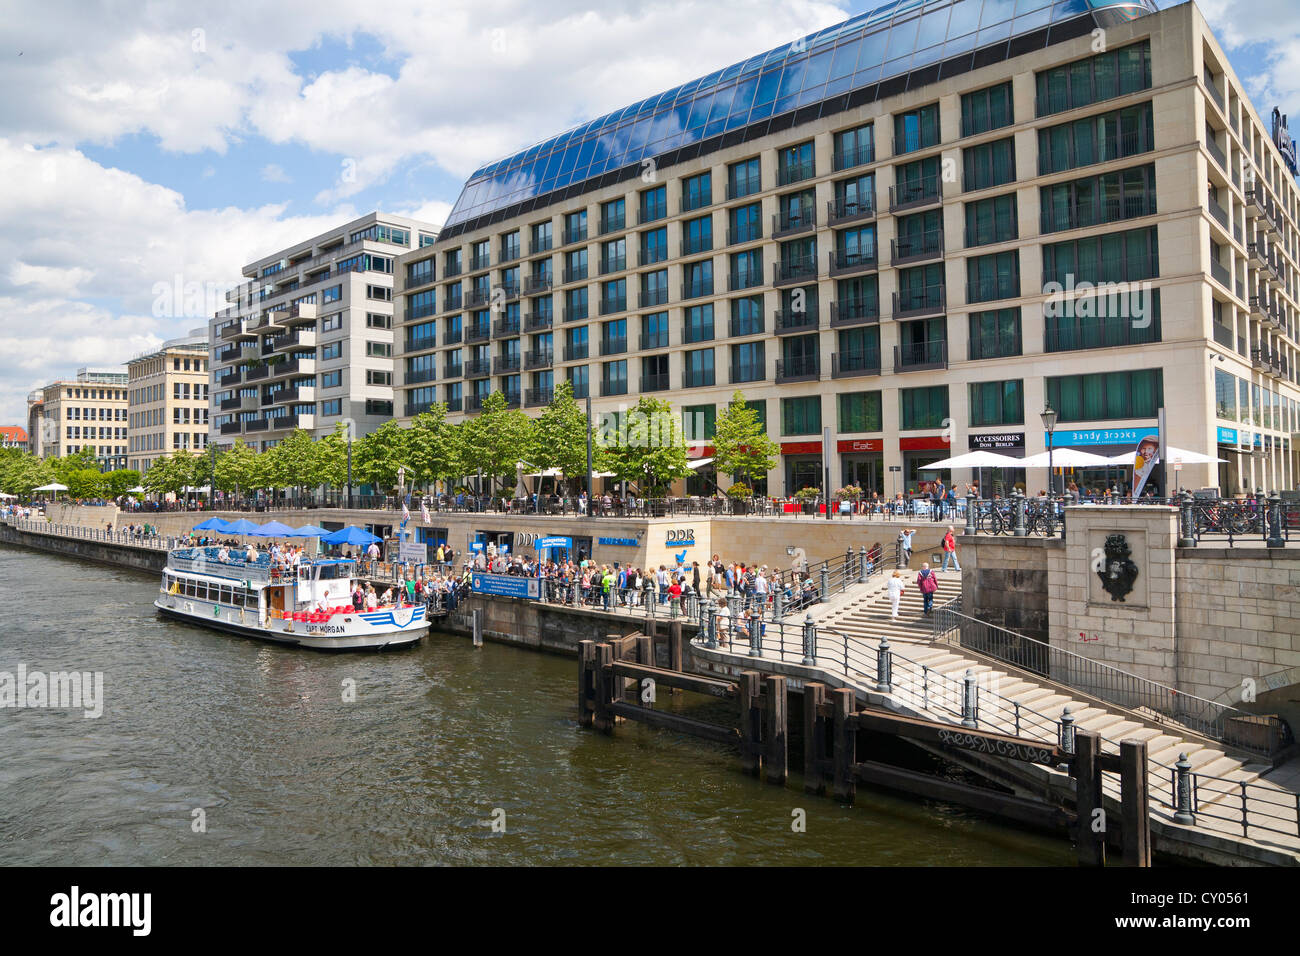 Promenade of the Spree river, Radisson Blu Hotel, DDR Museum, GDR museum, sightseeing boat, Mitte district, Berlin - Stock Image